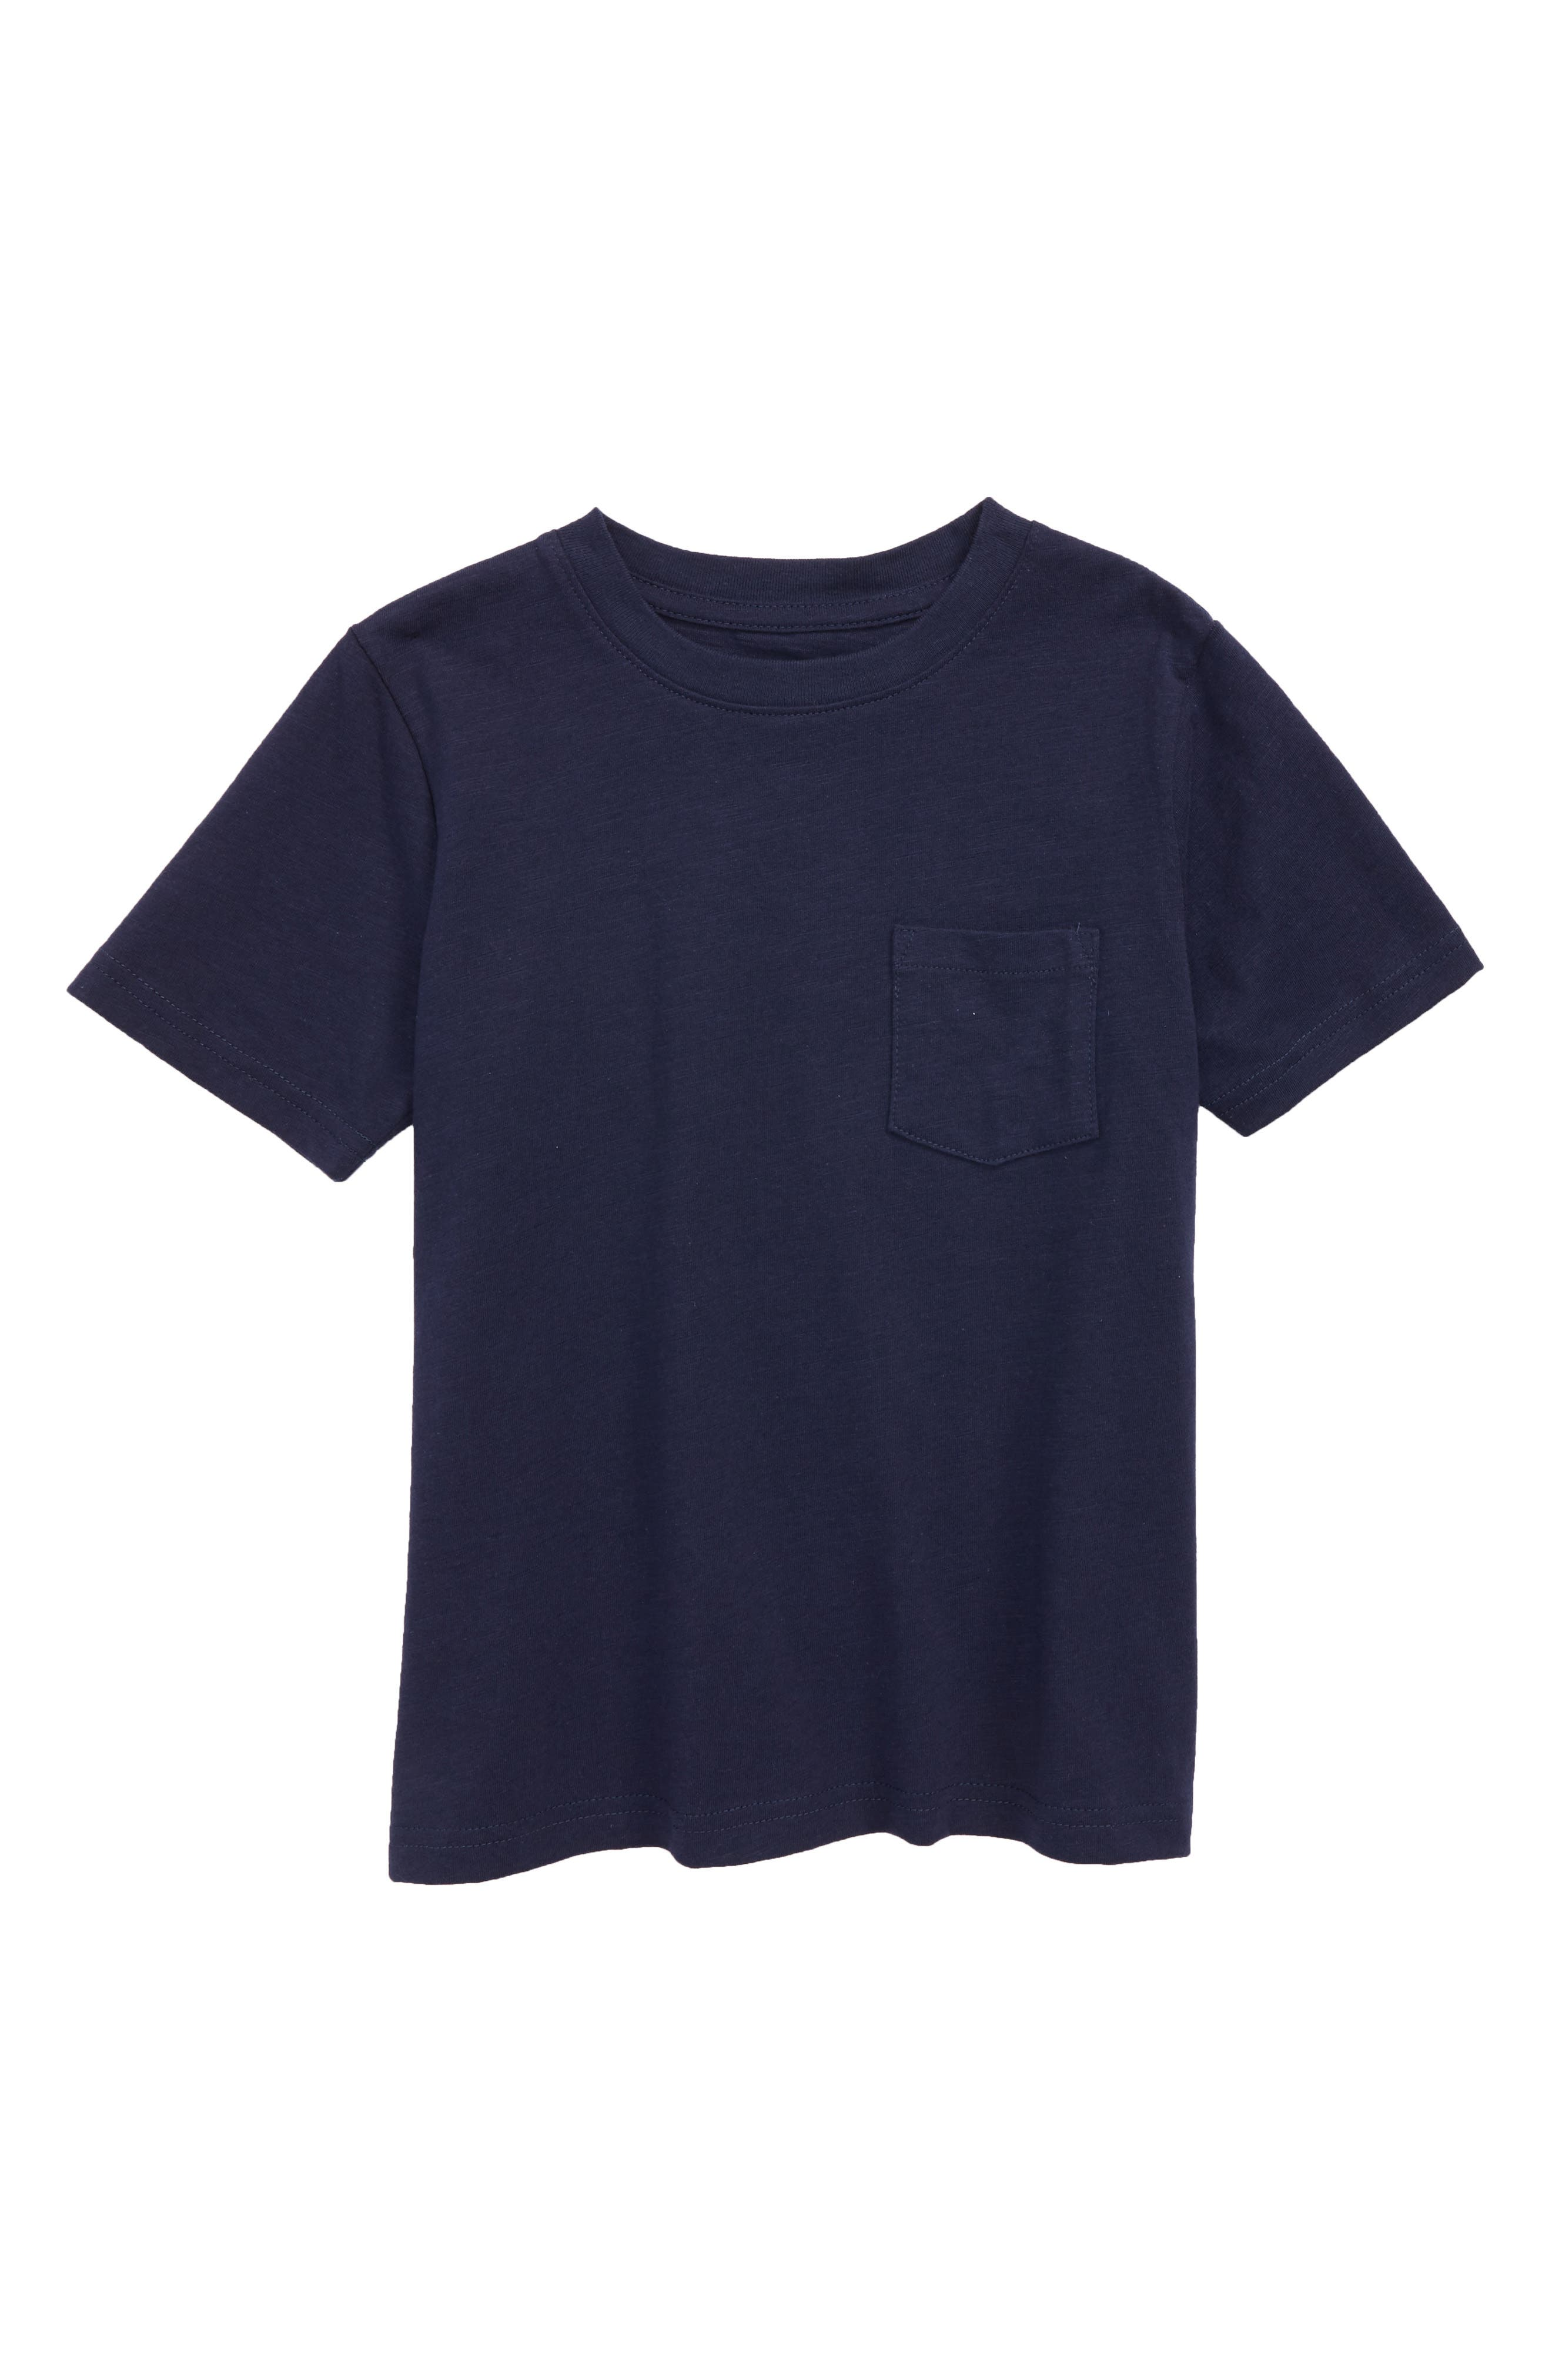 Slub Pocket T-Shirt,                         Main,                         color, Navy